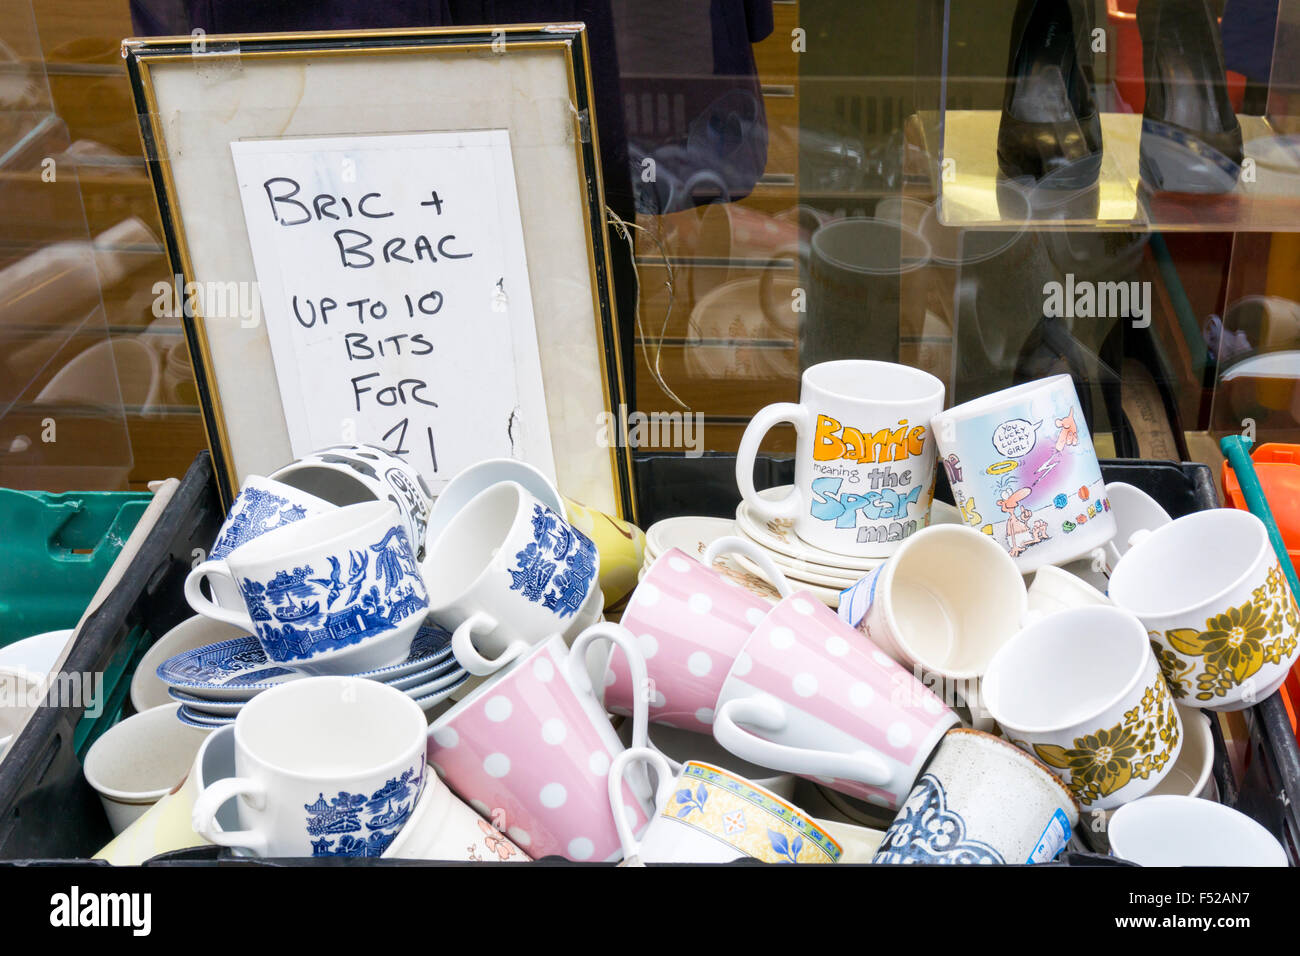 A box of secondhand crockery mugs and cups for sale outside a bric a brac shop. - Stock Image